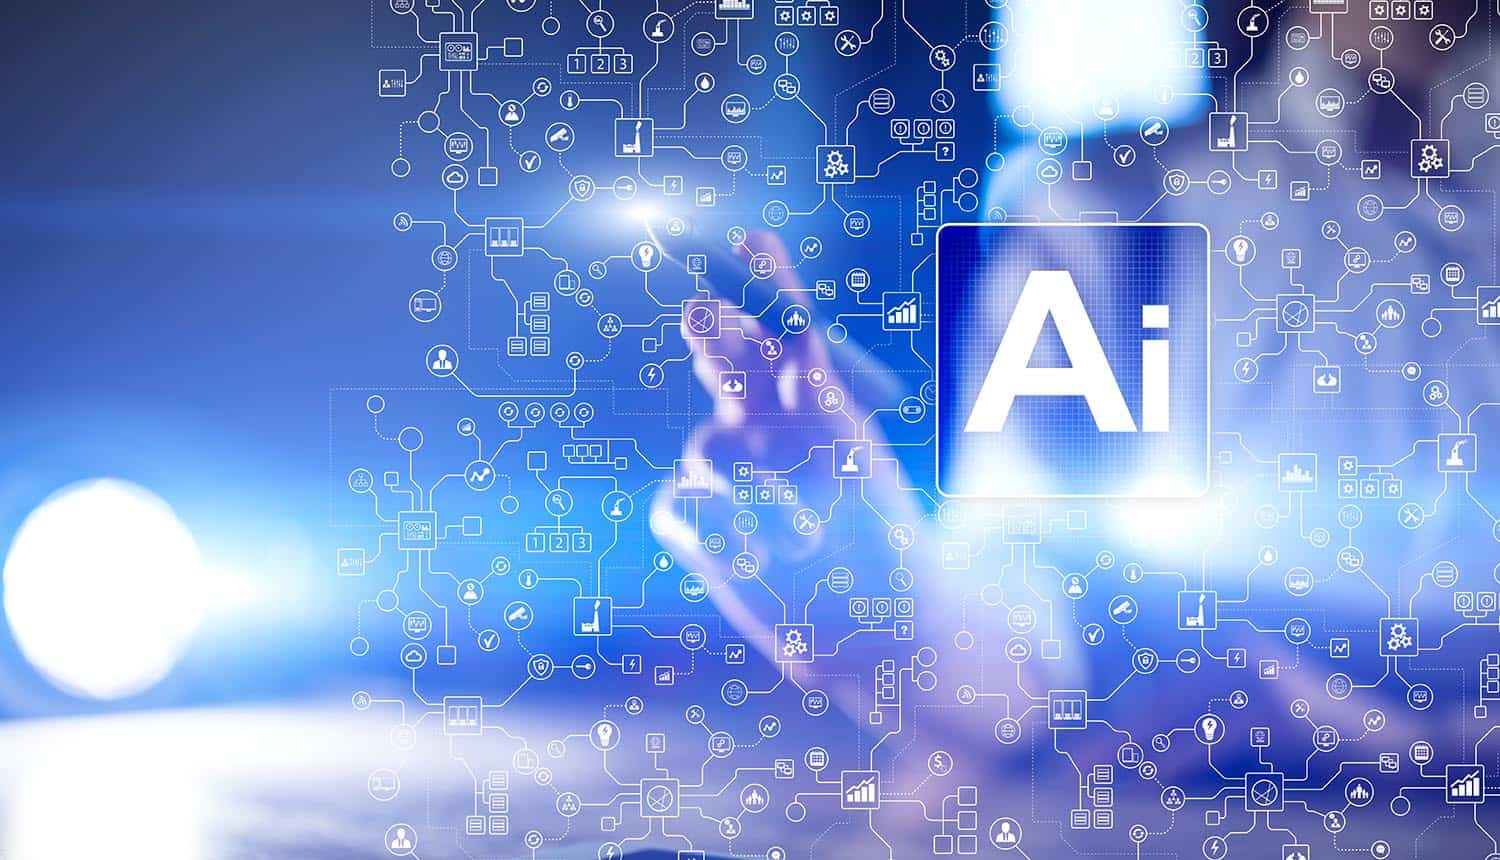 Artificial intelligence and smart technology on virtual screen showing the trend towards the Intelligence of Things